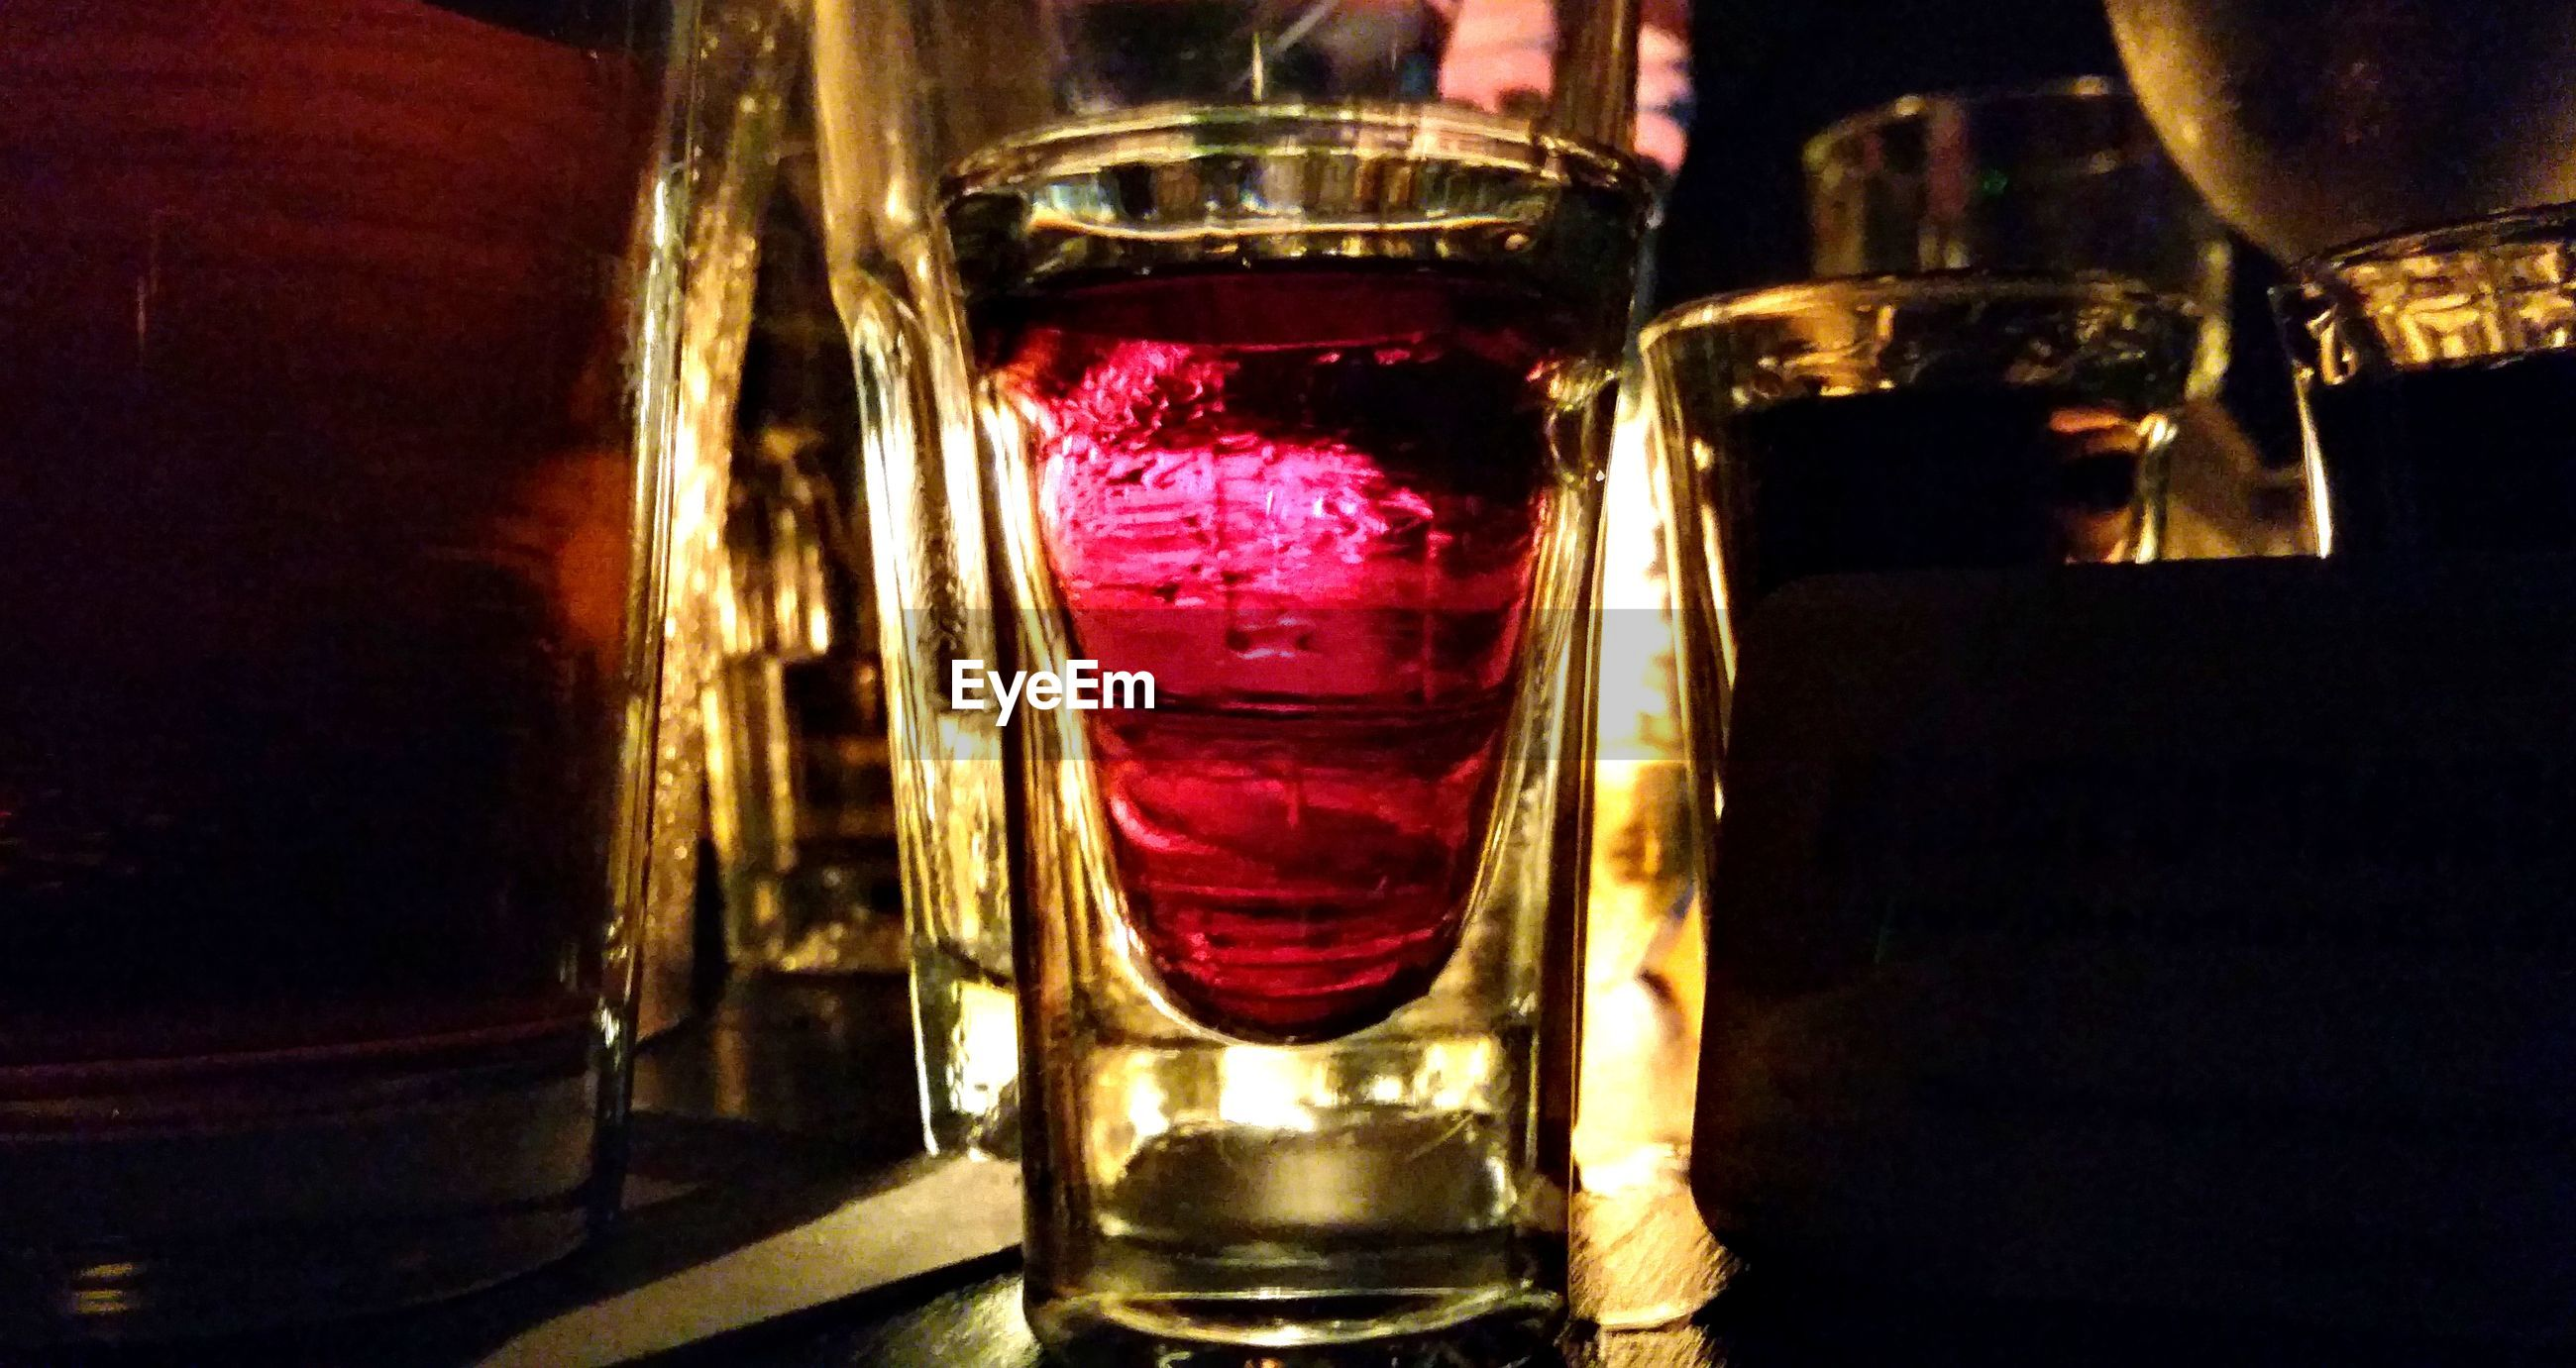 Close-up of drink glass on restaurant